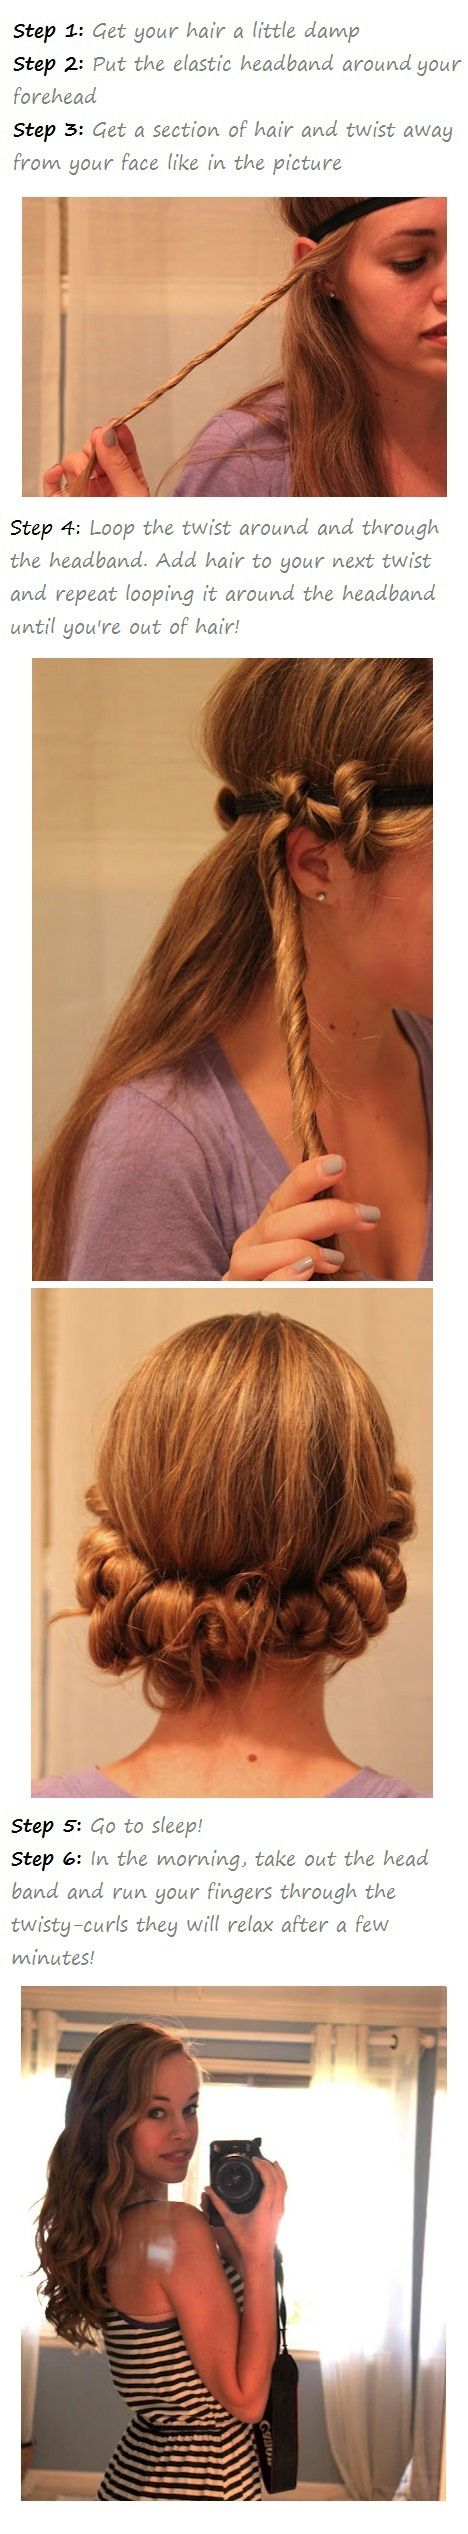 easy noheat hairstyles for dirty hair shorts easy and hair style